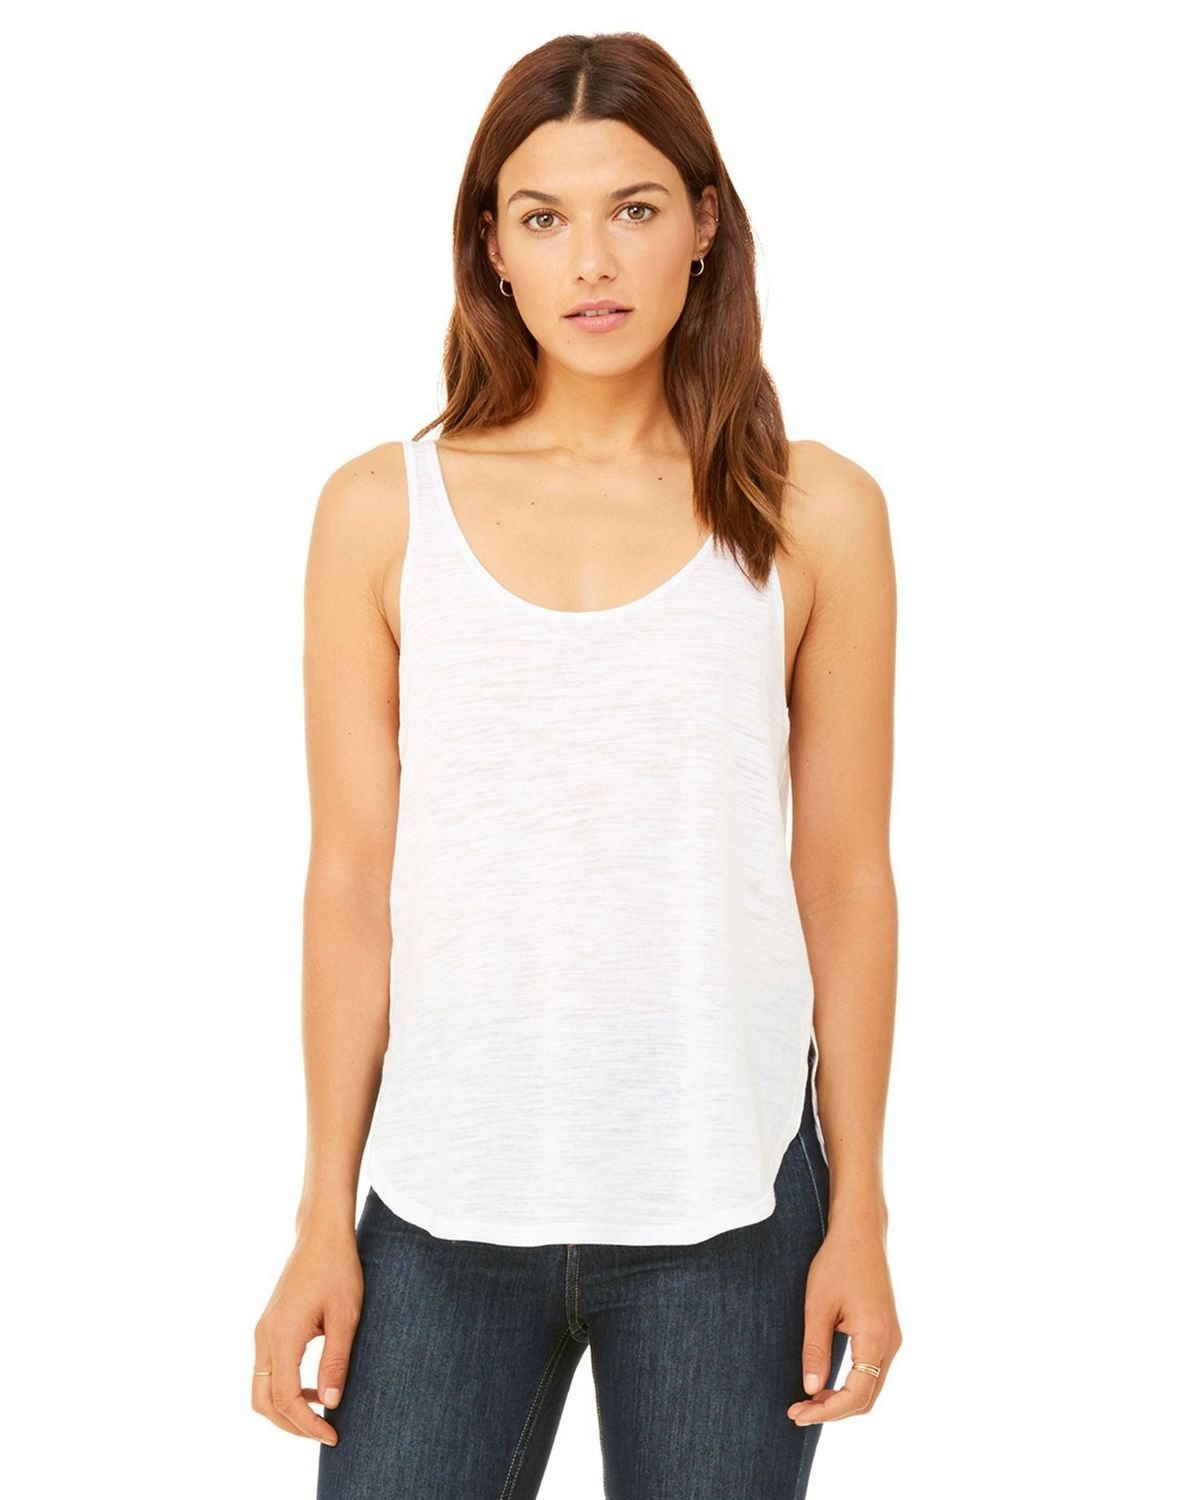 Bella + Canvas B8802 Women's Flowy Side Slit Tank - White Slub - S from Bella + Canvas